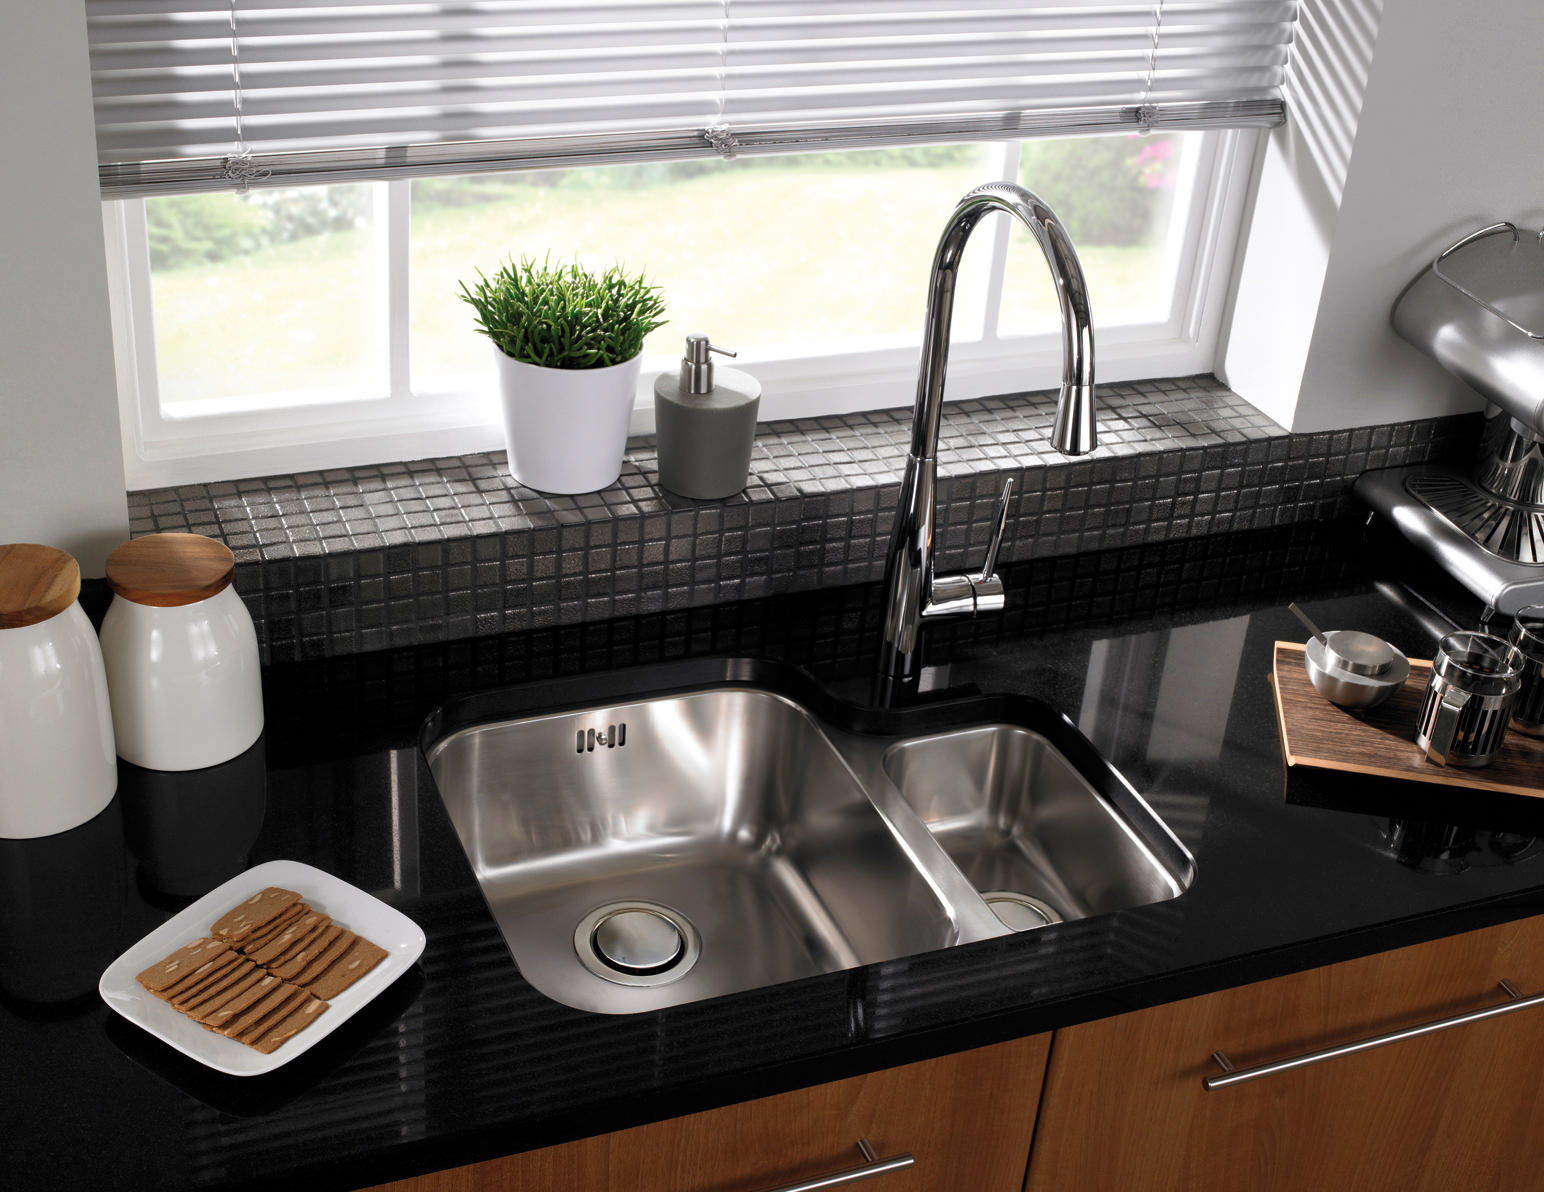 Alternate image of astracast edge d1 polished stainless steel undermount sink and tap 1 5b